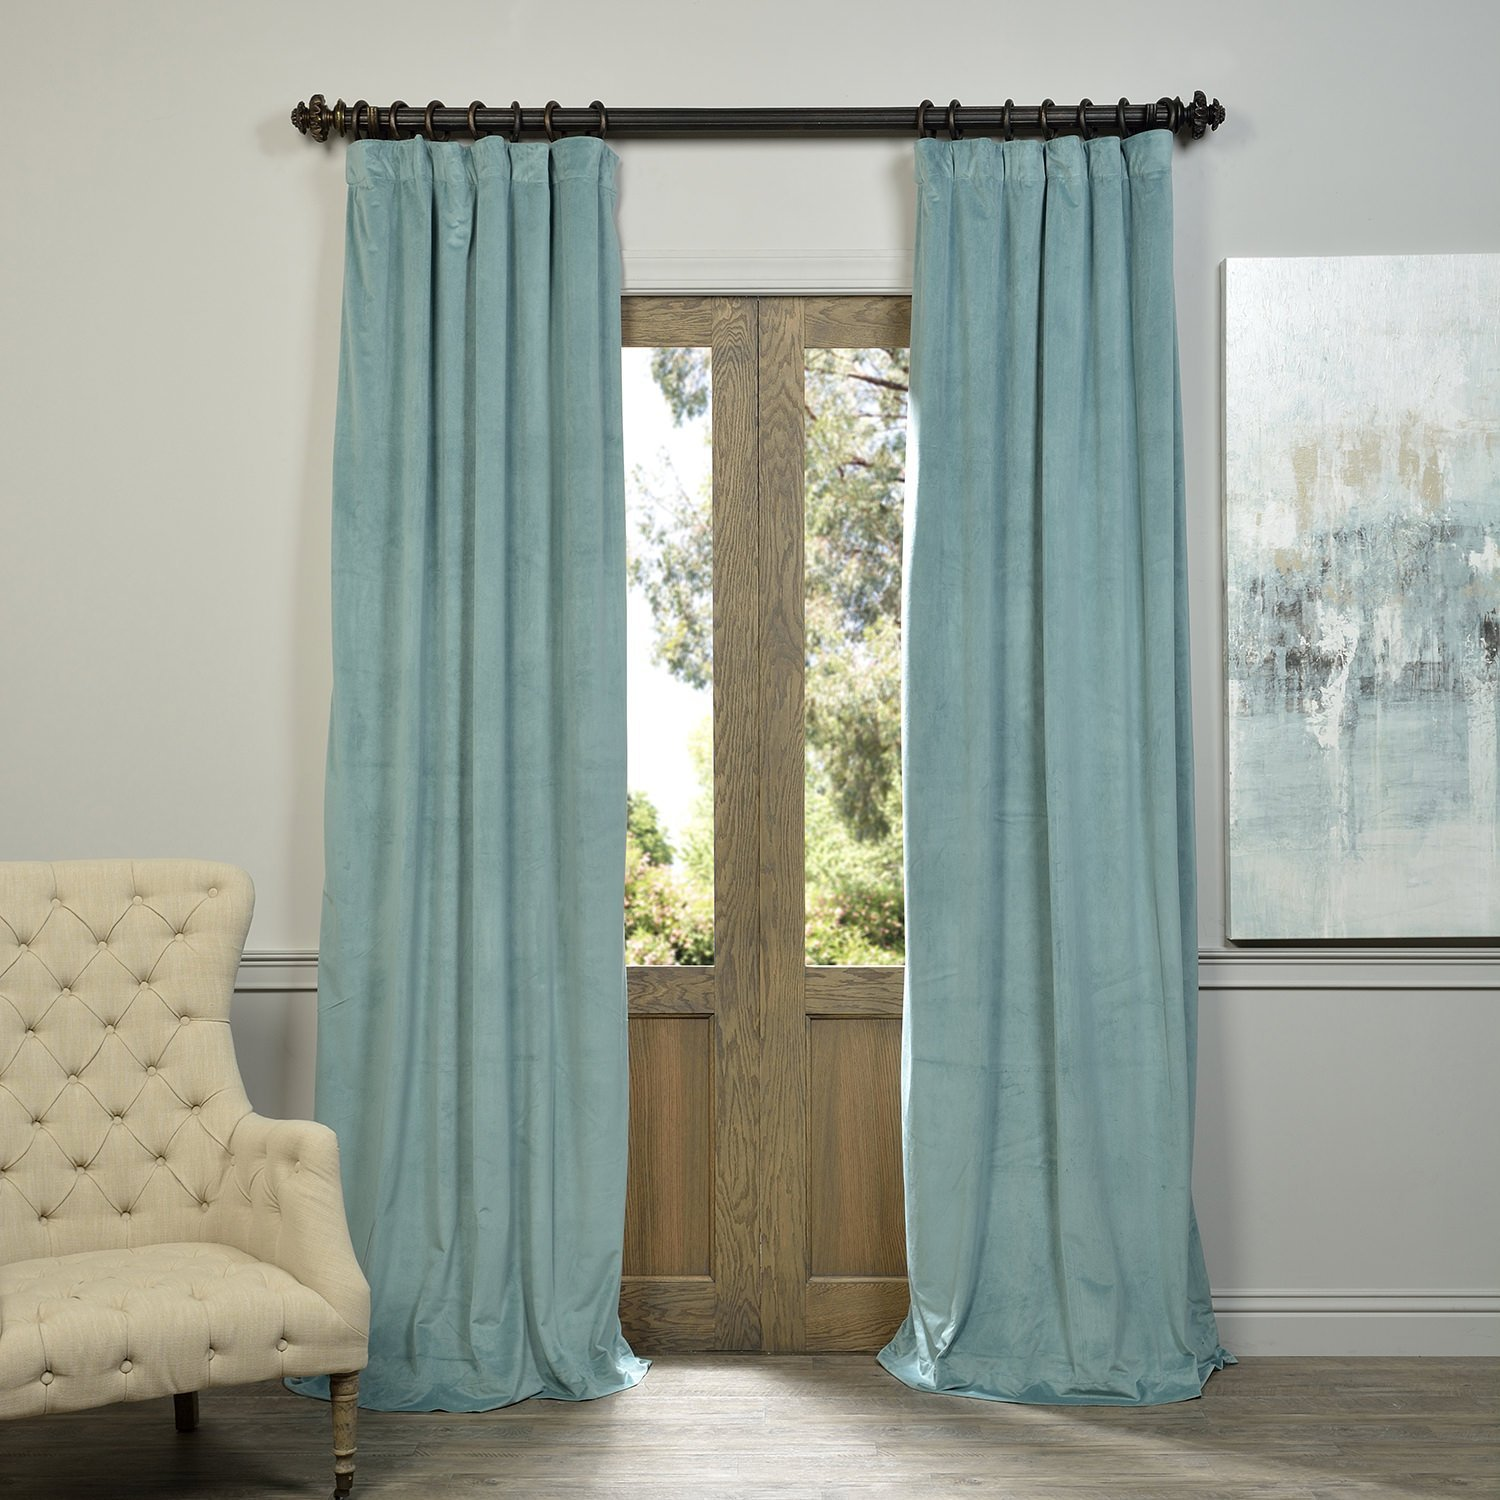 ideas barn panels attachment of outdoor decor drapes inch pottery curtains curtain